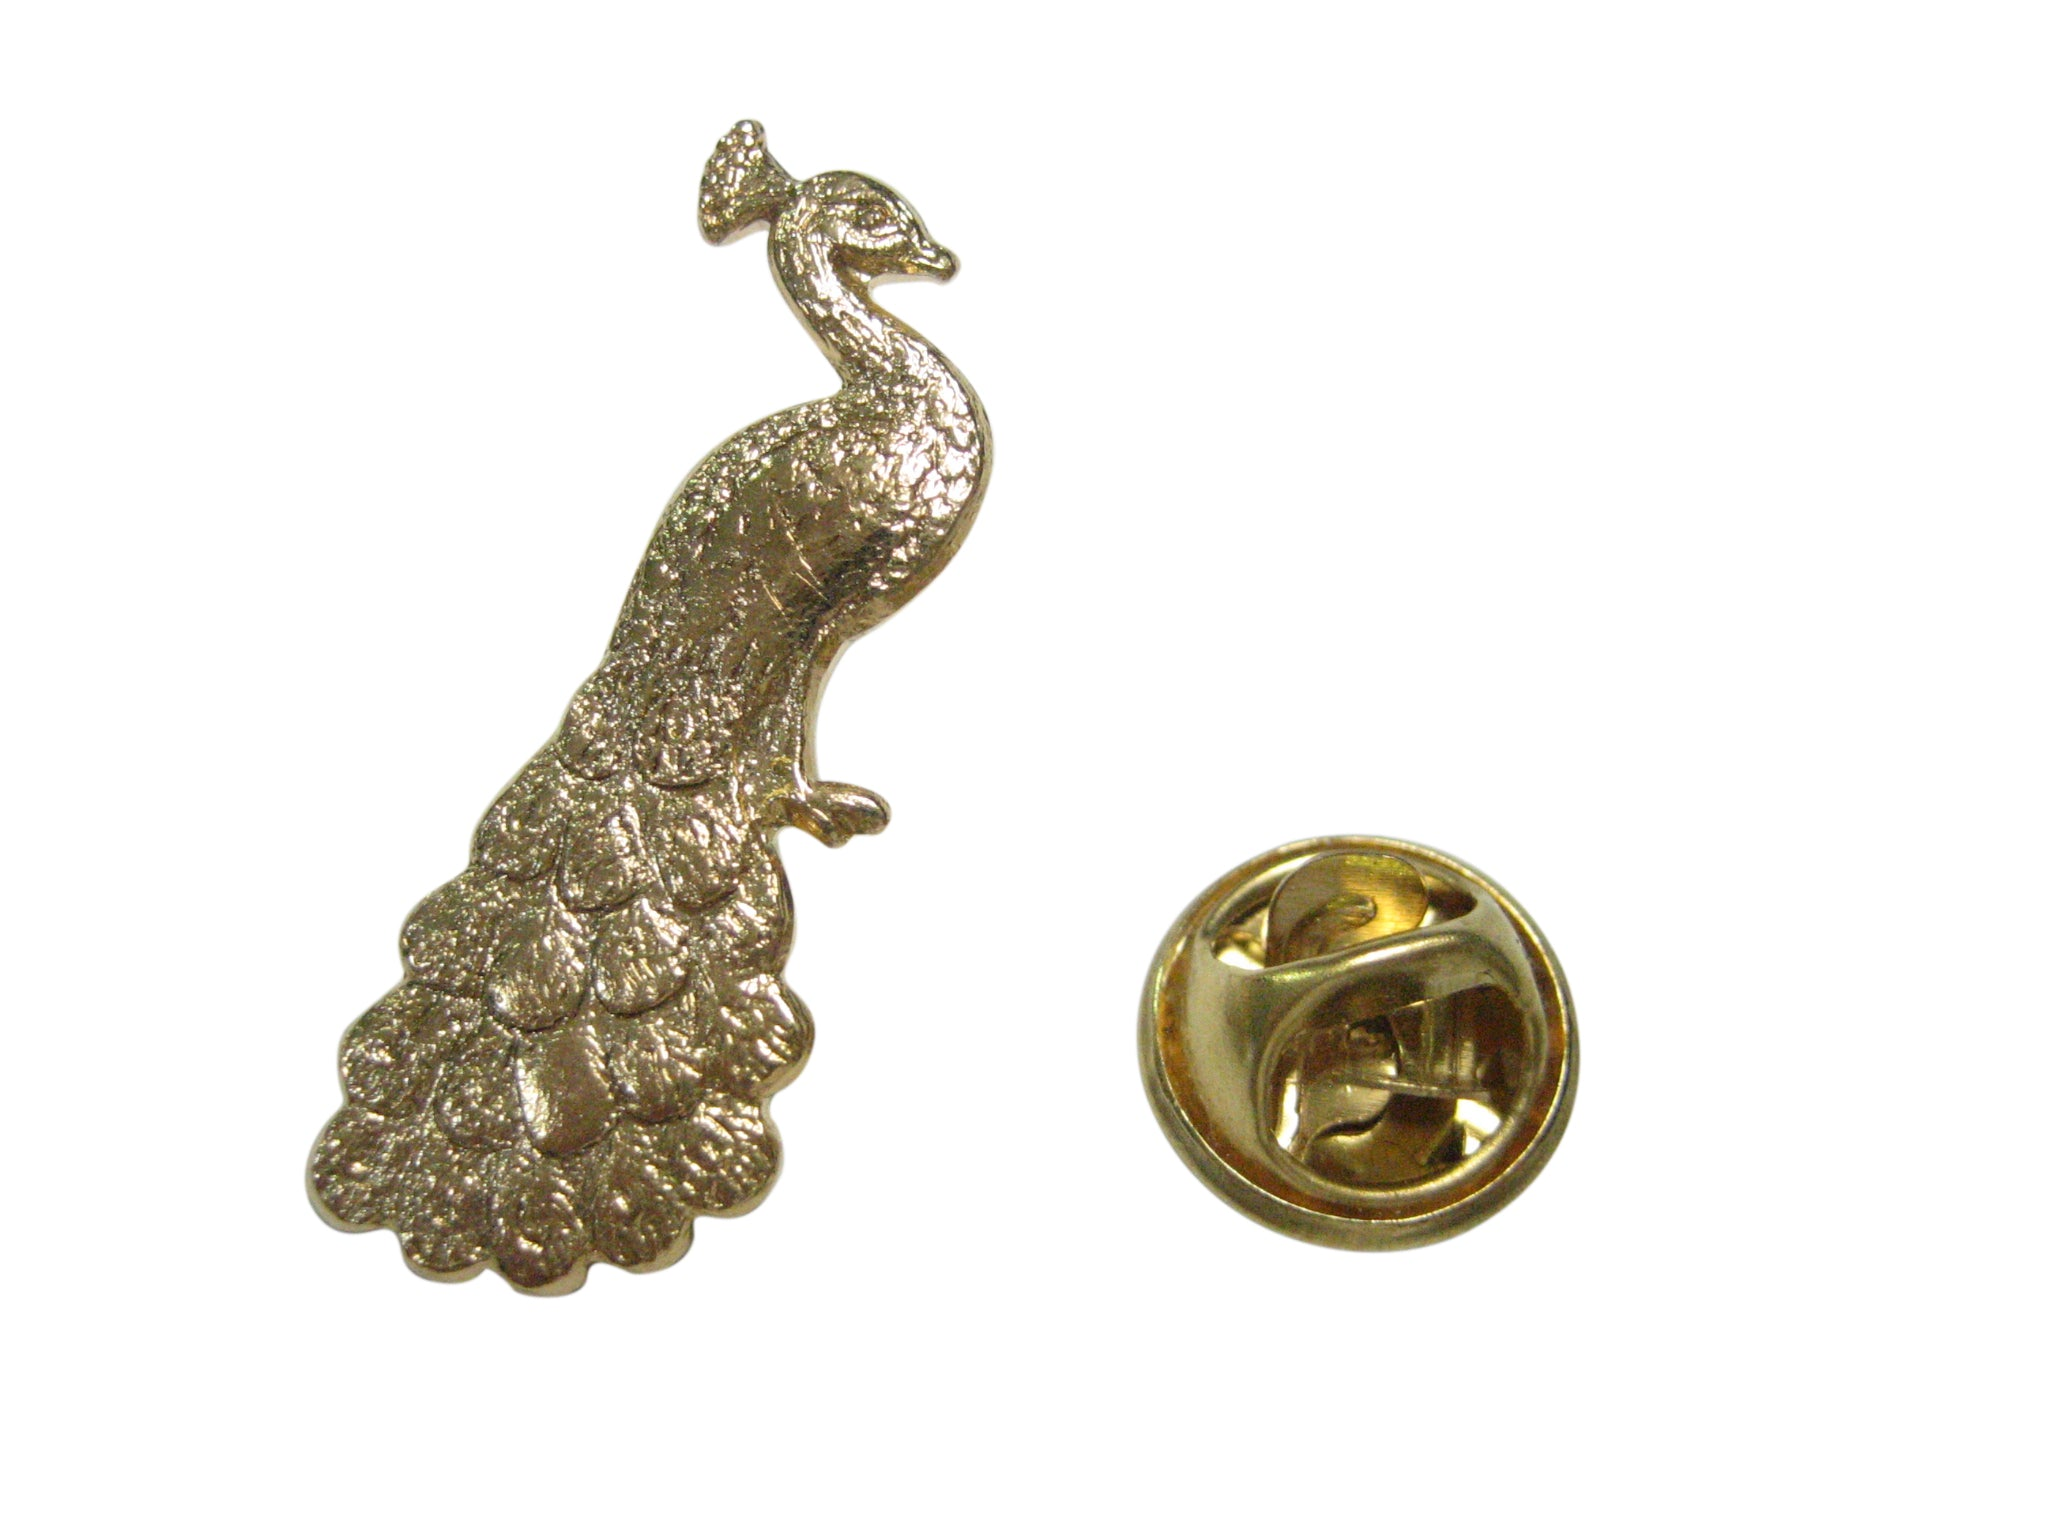 Gold Toned Sitting Peacock Bird Lapel Pin